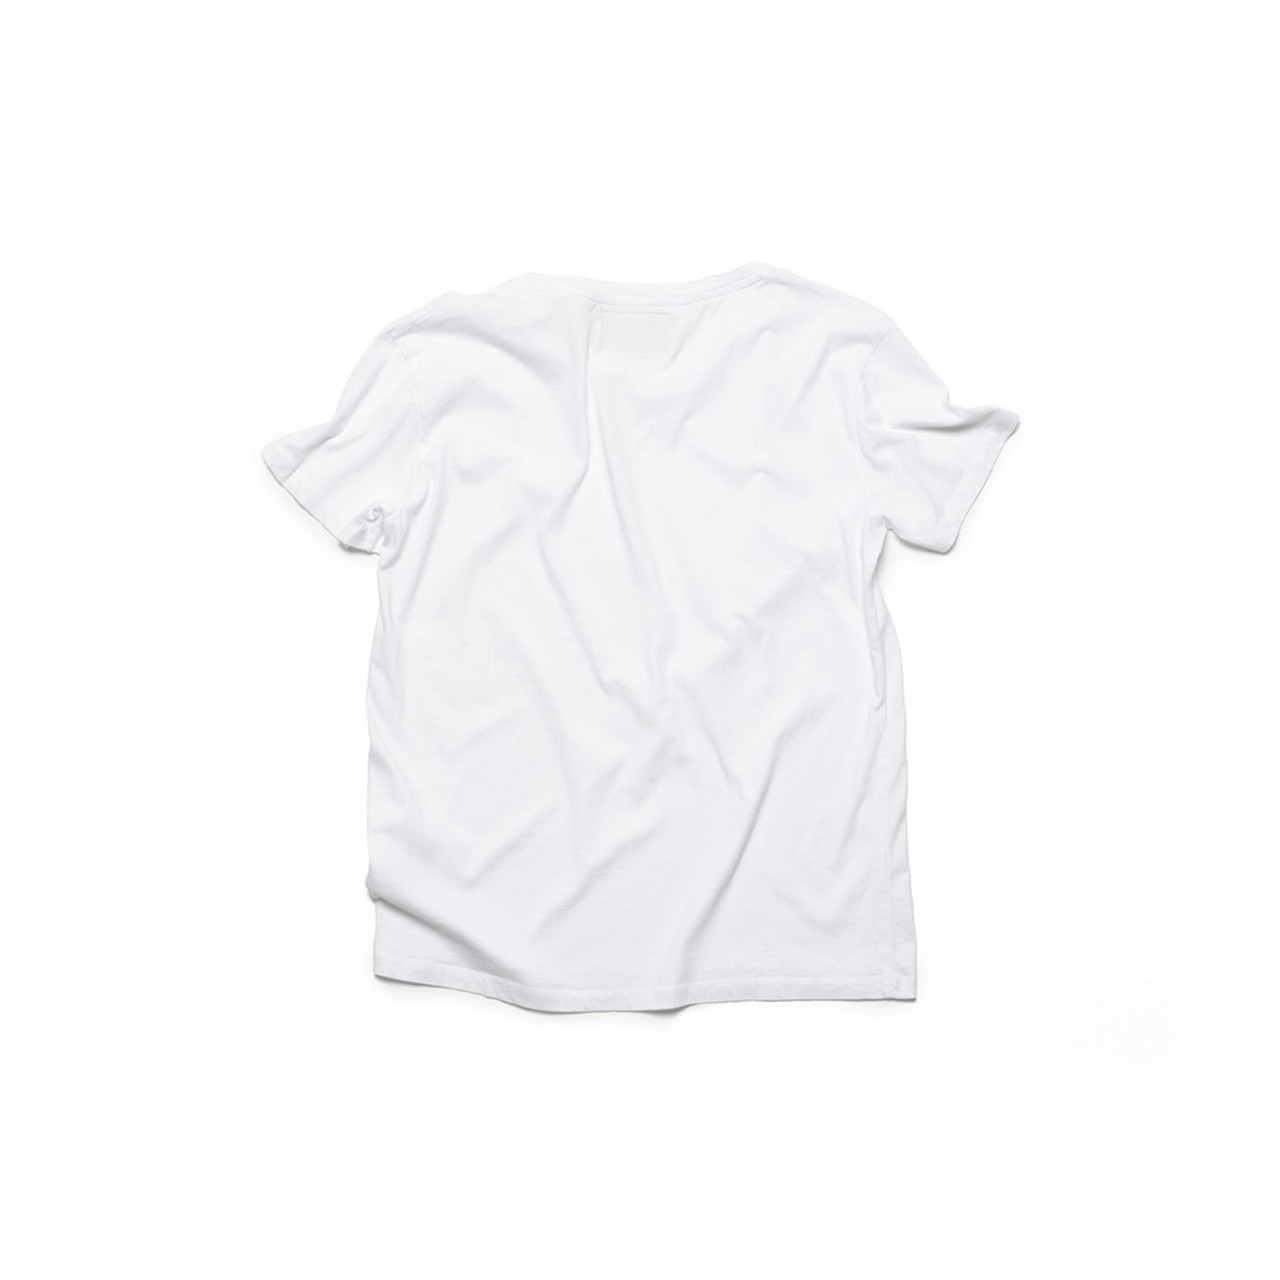 Spalwart Team Premium T-shirt in White